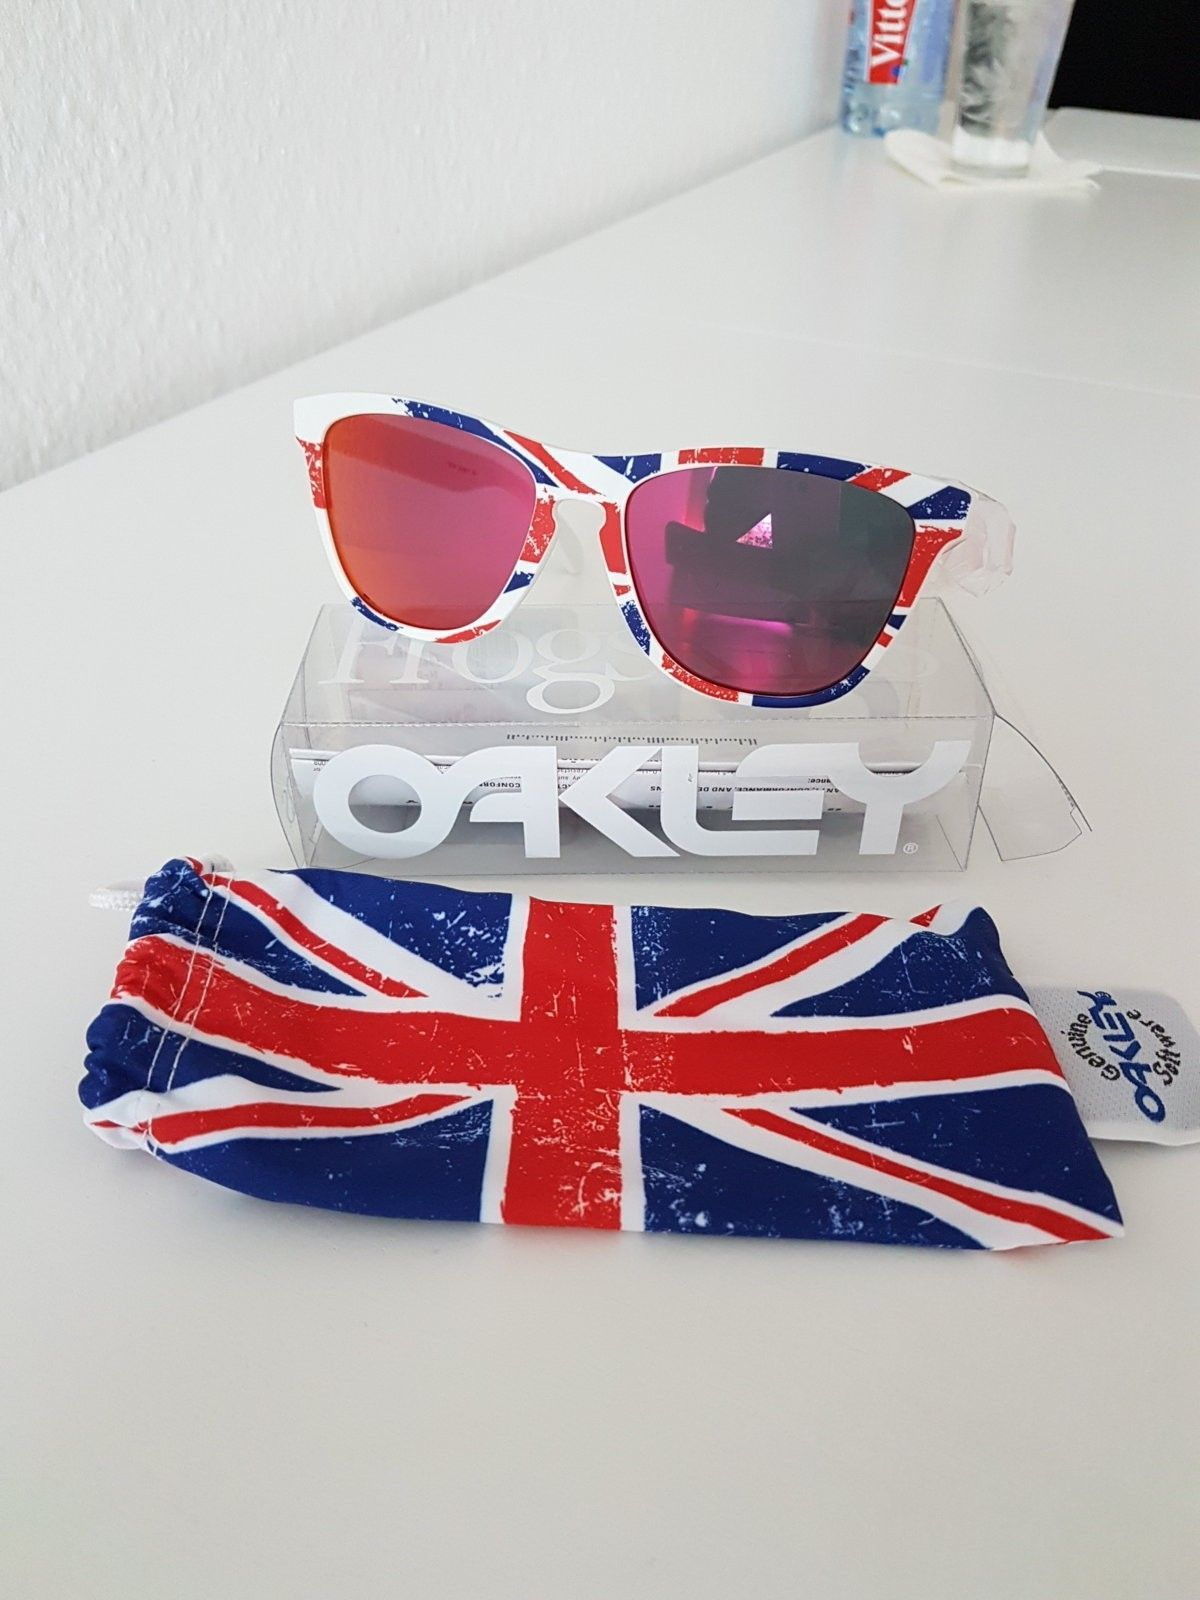 Old Glory and Union Jack BNIB 310$ - 20160503_185124.jpg